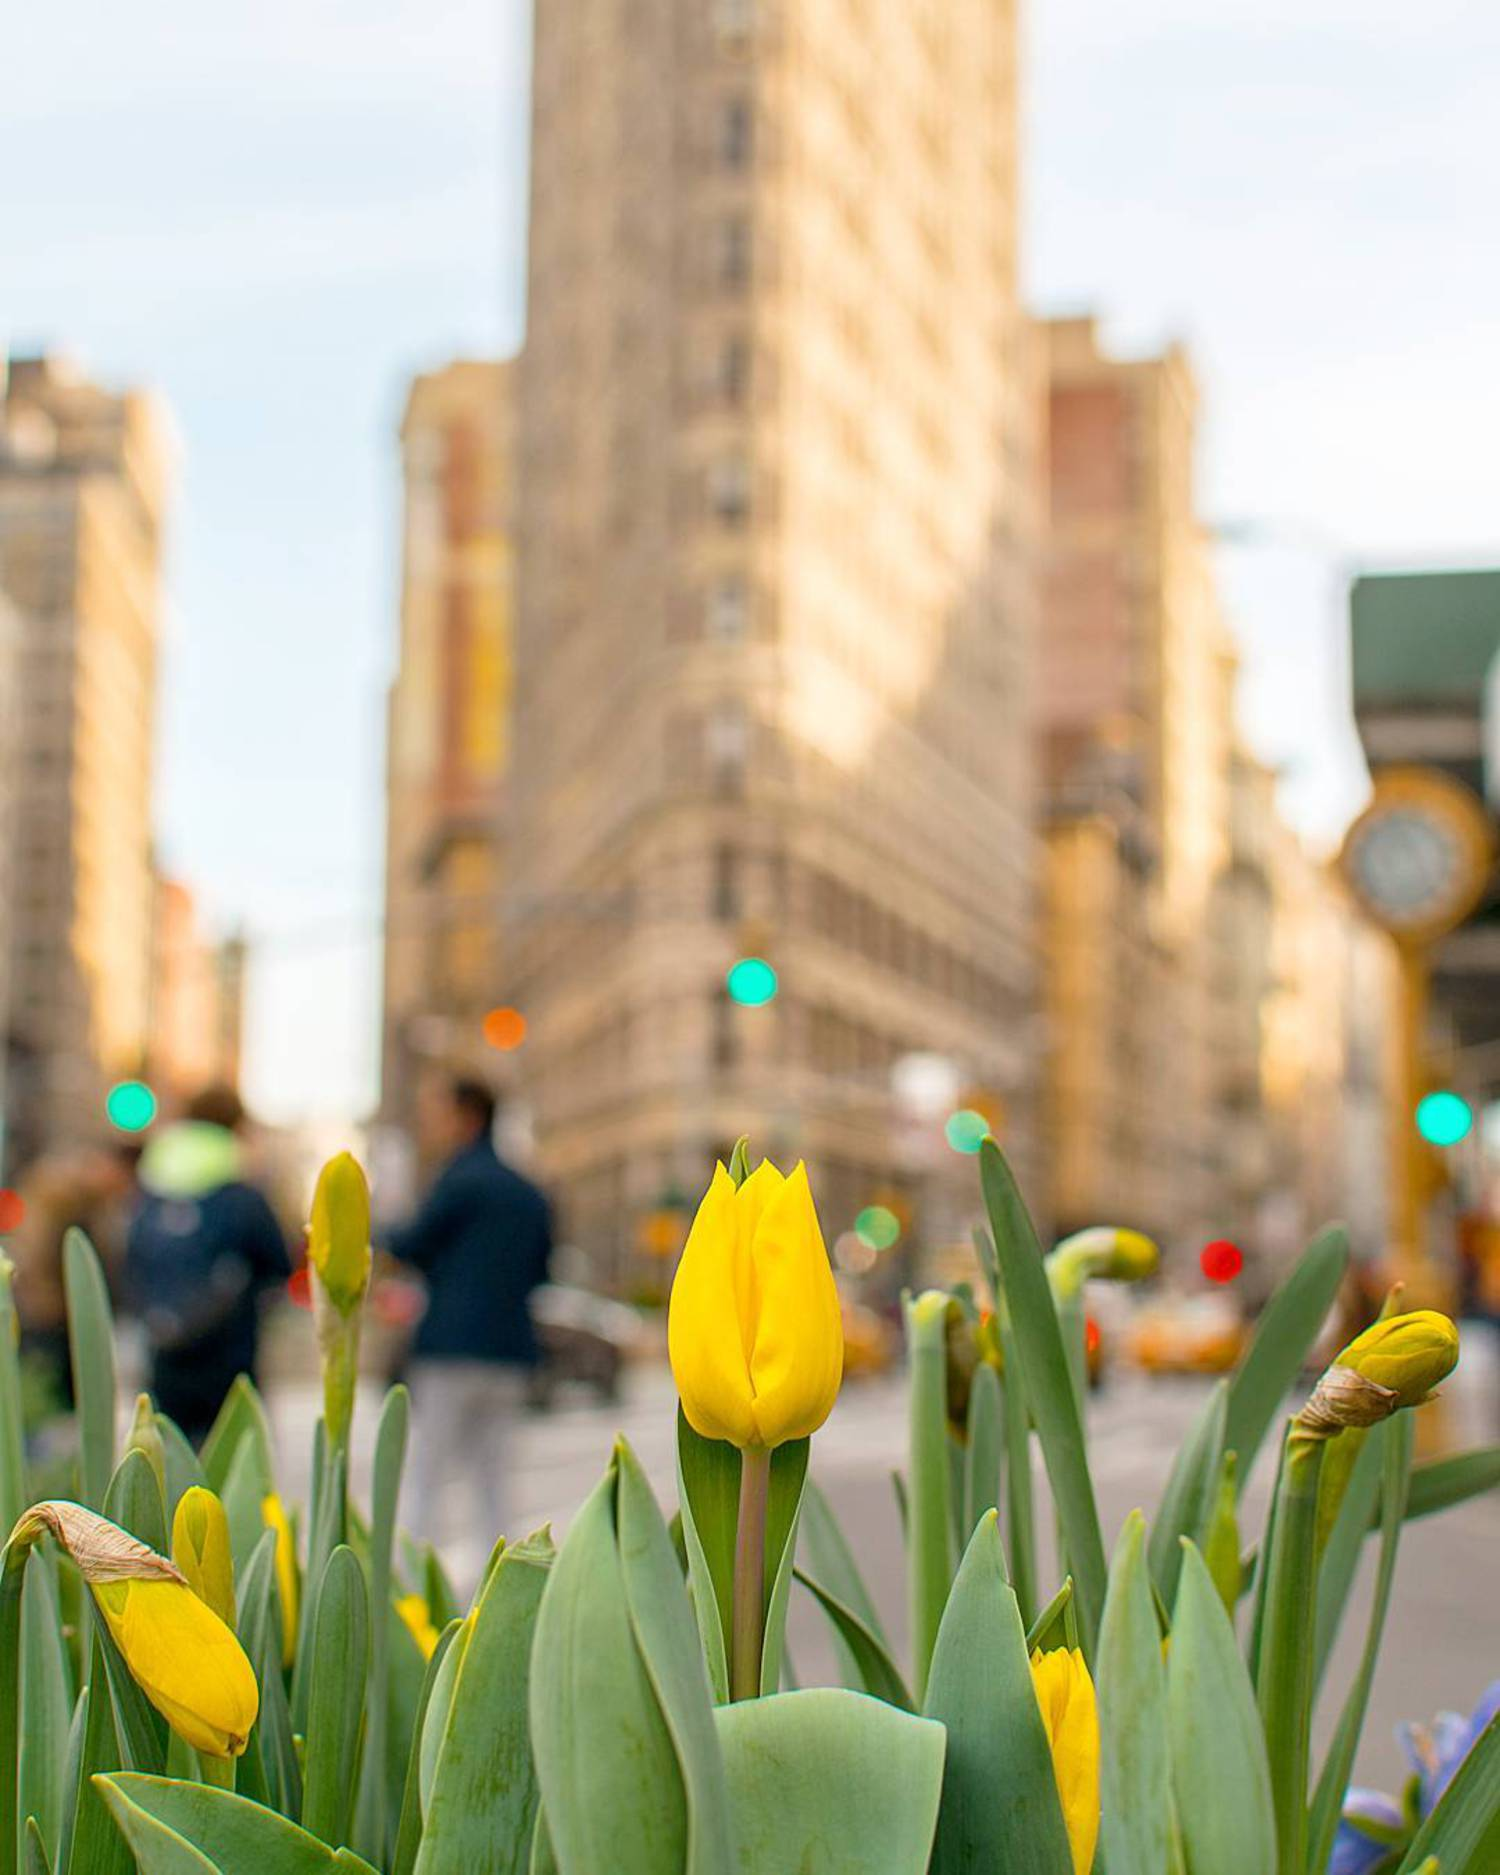 Spring is the season of change. Don't be fooled today!  _ #flatironbuilding #wonderful_places #global_hotshotz #igpodium #topnewyorkphoto #nikonnofilter #igshotz #clickgeardaily #thebest_capture #jaw_dropping_shots #folkcreative #nycprimeshot #igglobalclub #globalcapture #igbest_shotz #newyork_instagram #ig_worldclub #livetravelchannel #photosergereview #awesomeglobe #travelawesome #earthpixco #awesomepix #icapture_nyc #nyloveyou